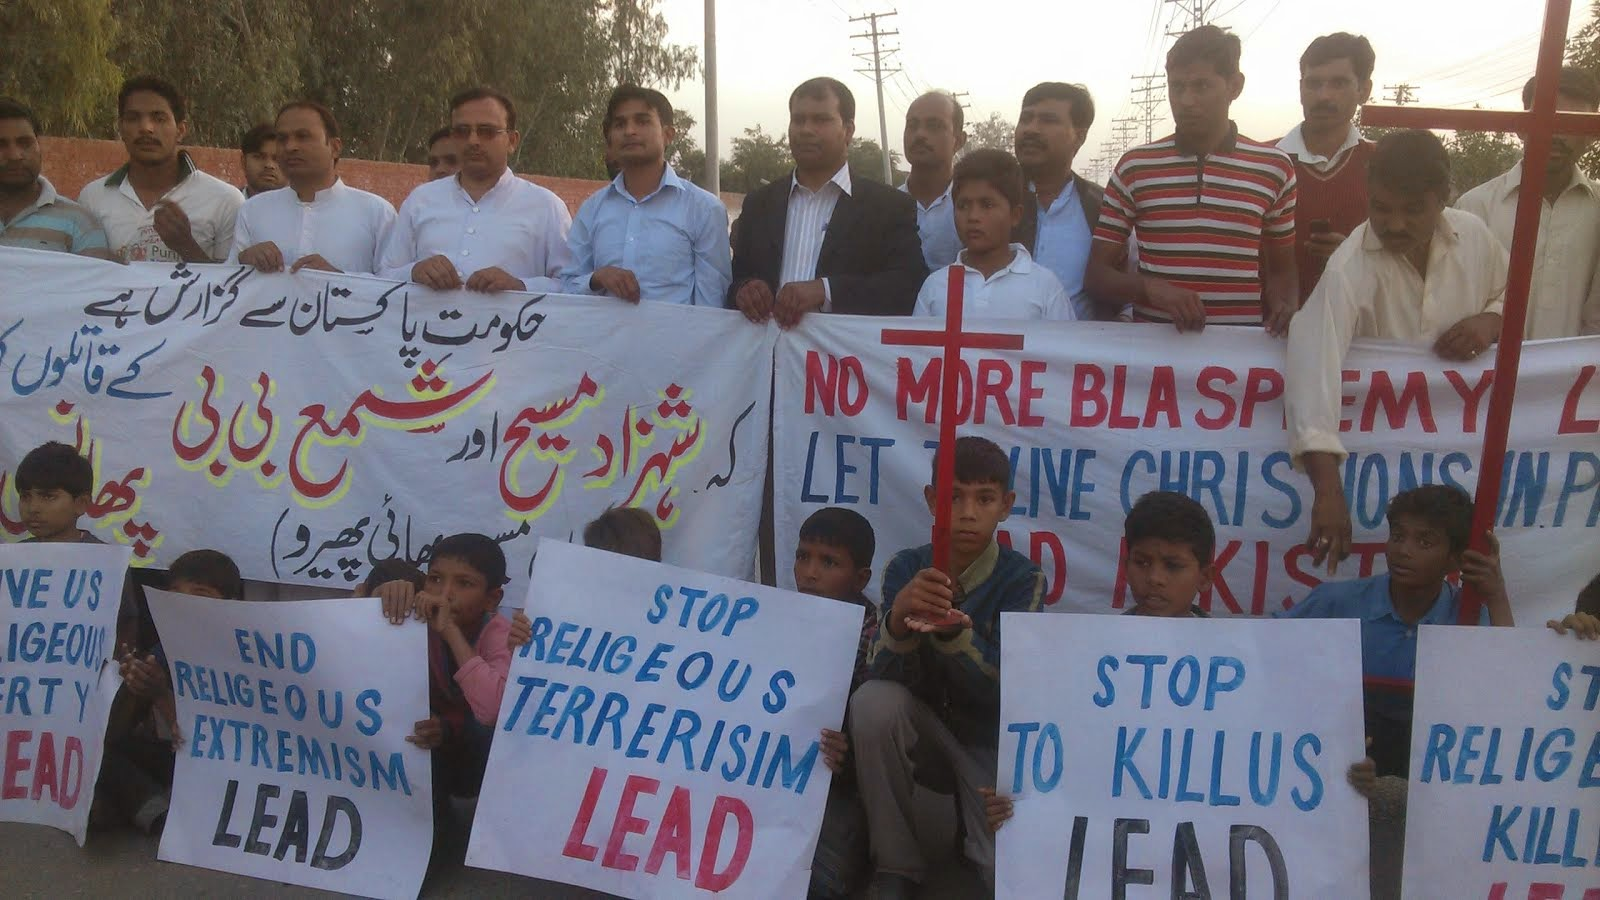 LEAD's Protest over alive burning of Christian Couple